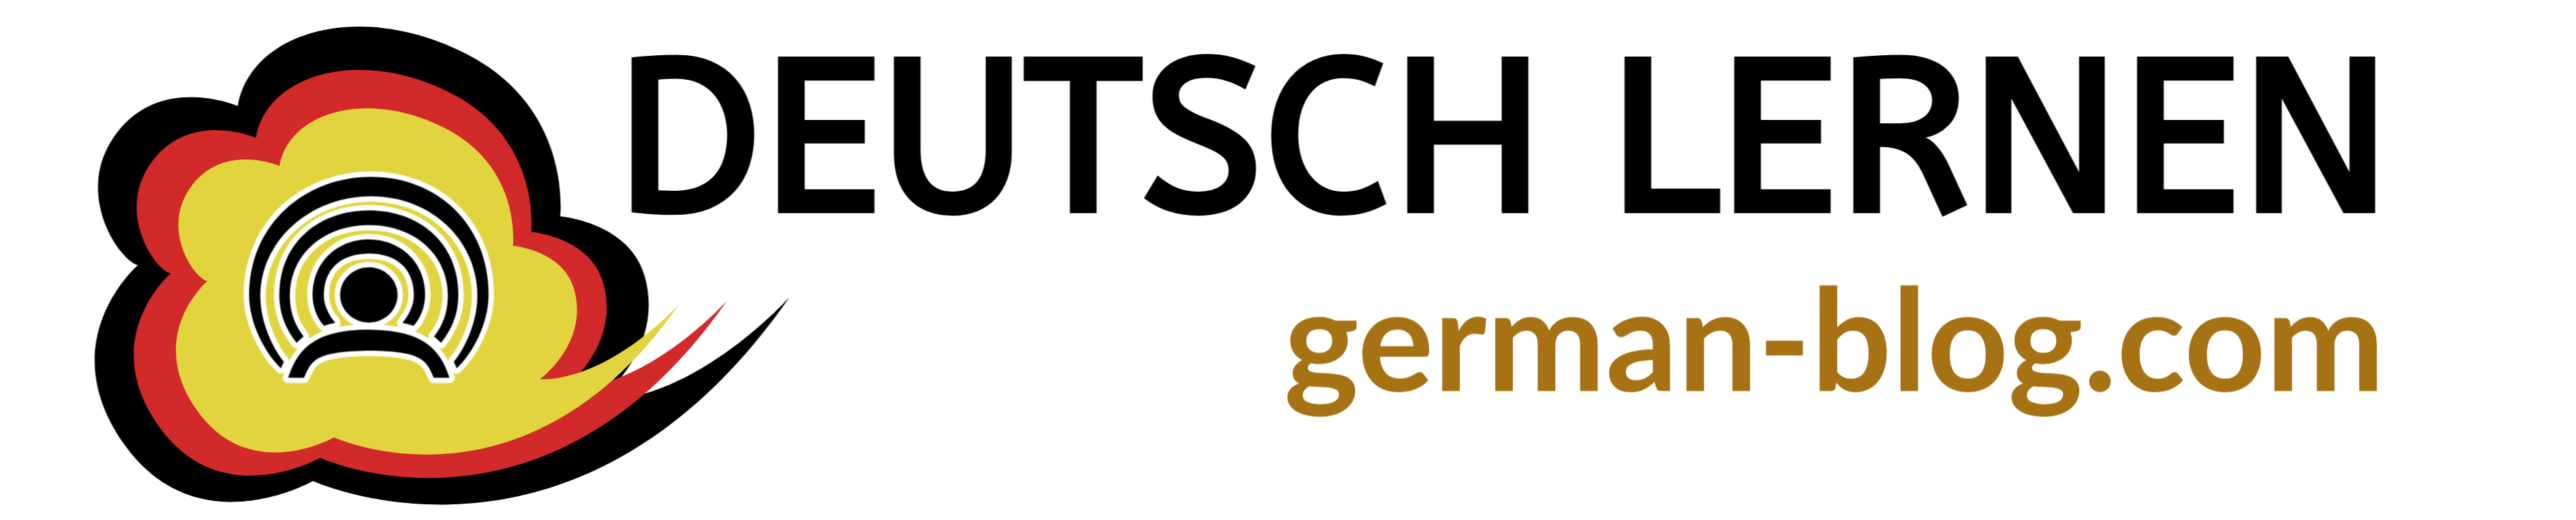 Learn German Online | Deutsche Grammatik Lernen | German Blog